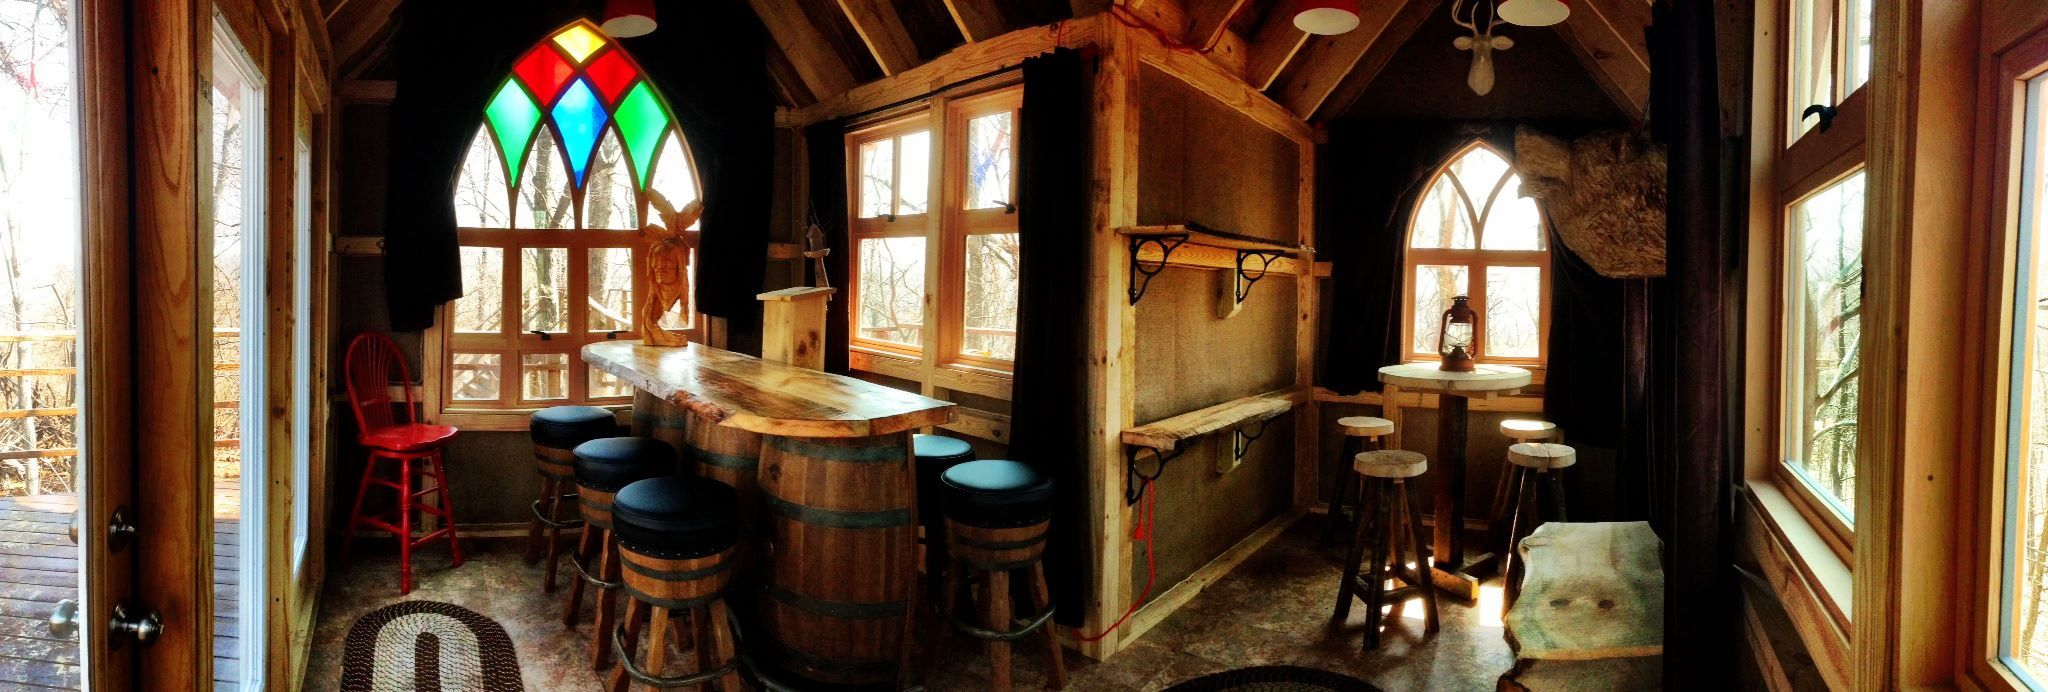 treehouse masters brewery. Inside The Pete Nelson Treehouse That Was On Animal Planet For Kevin Mooney Masters Brewery A